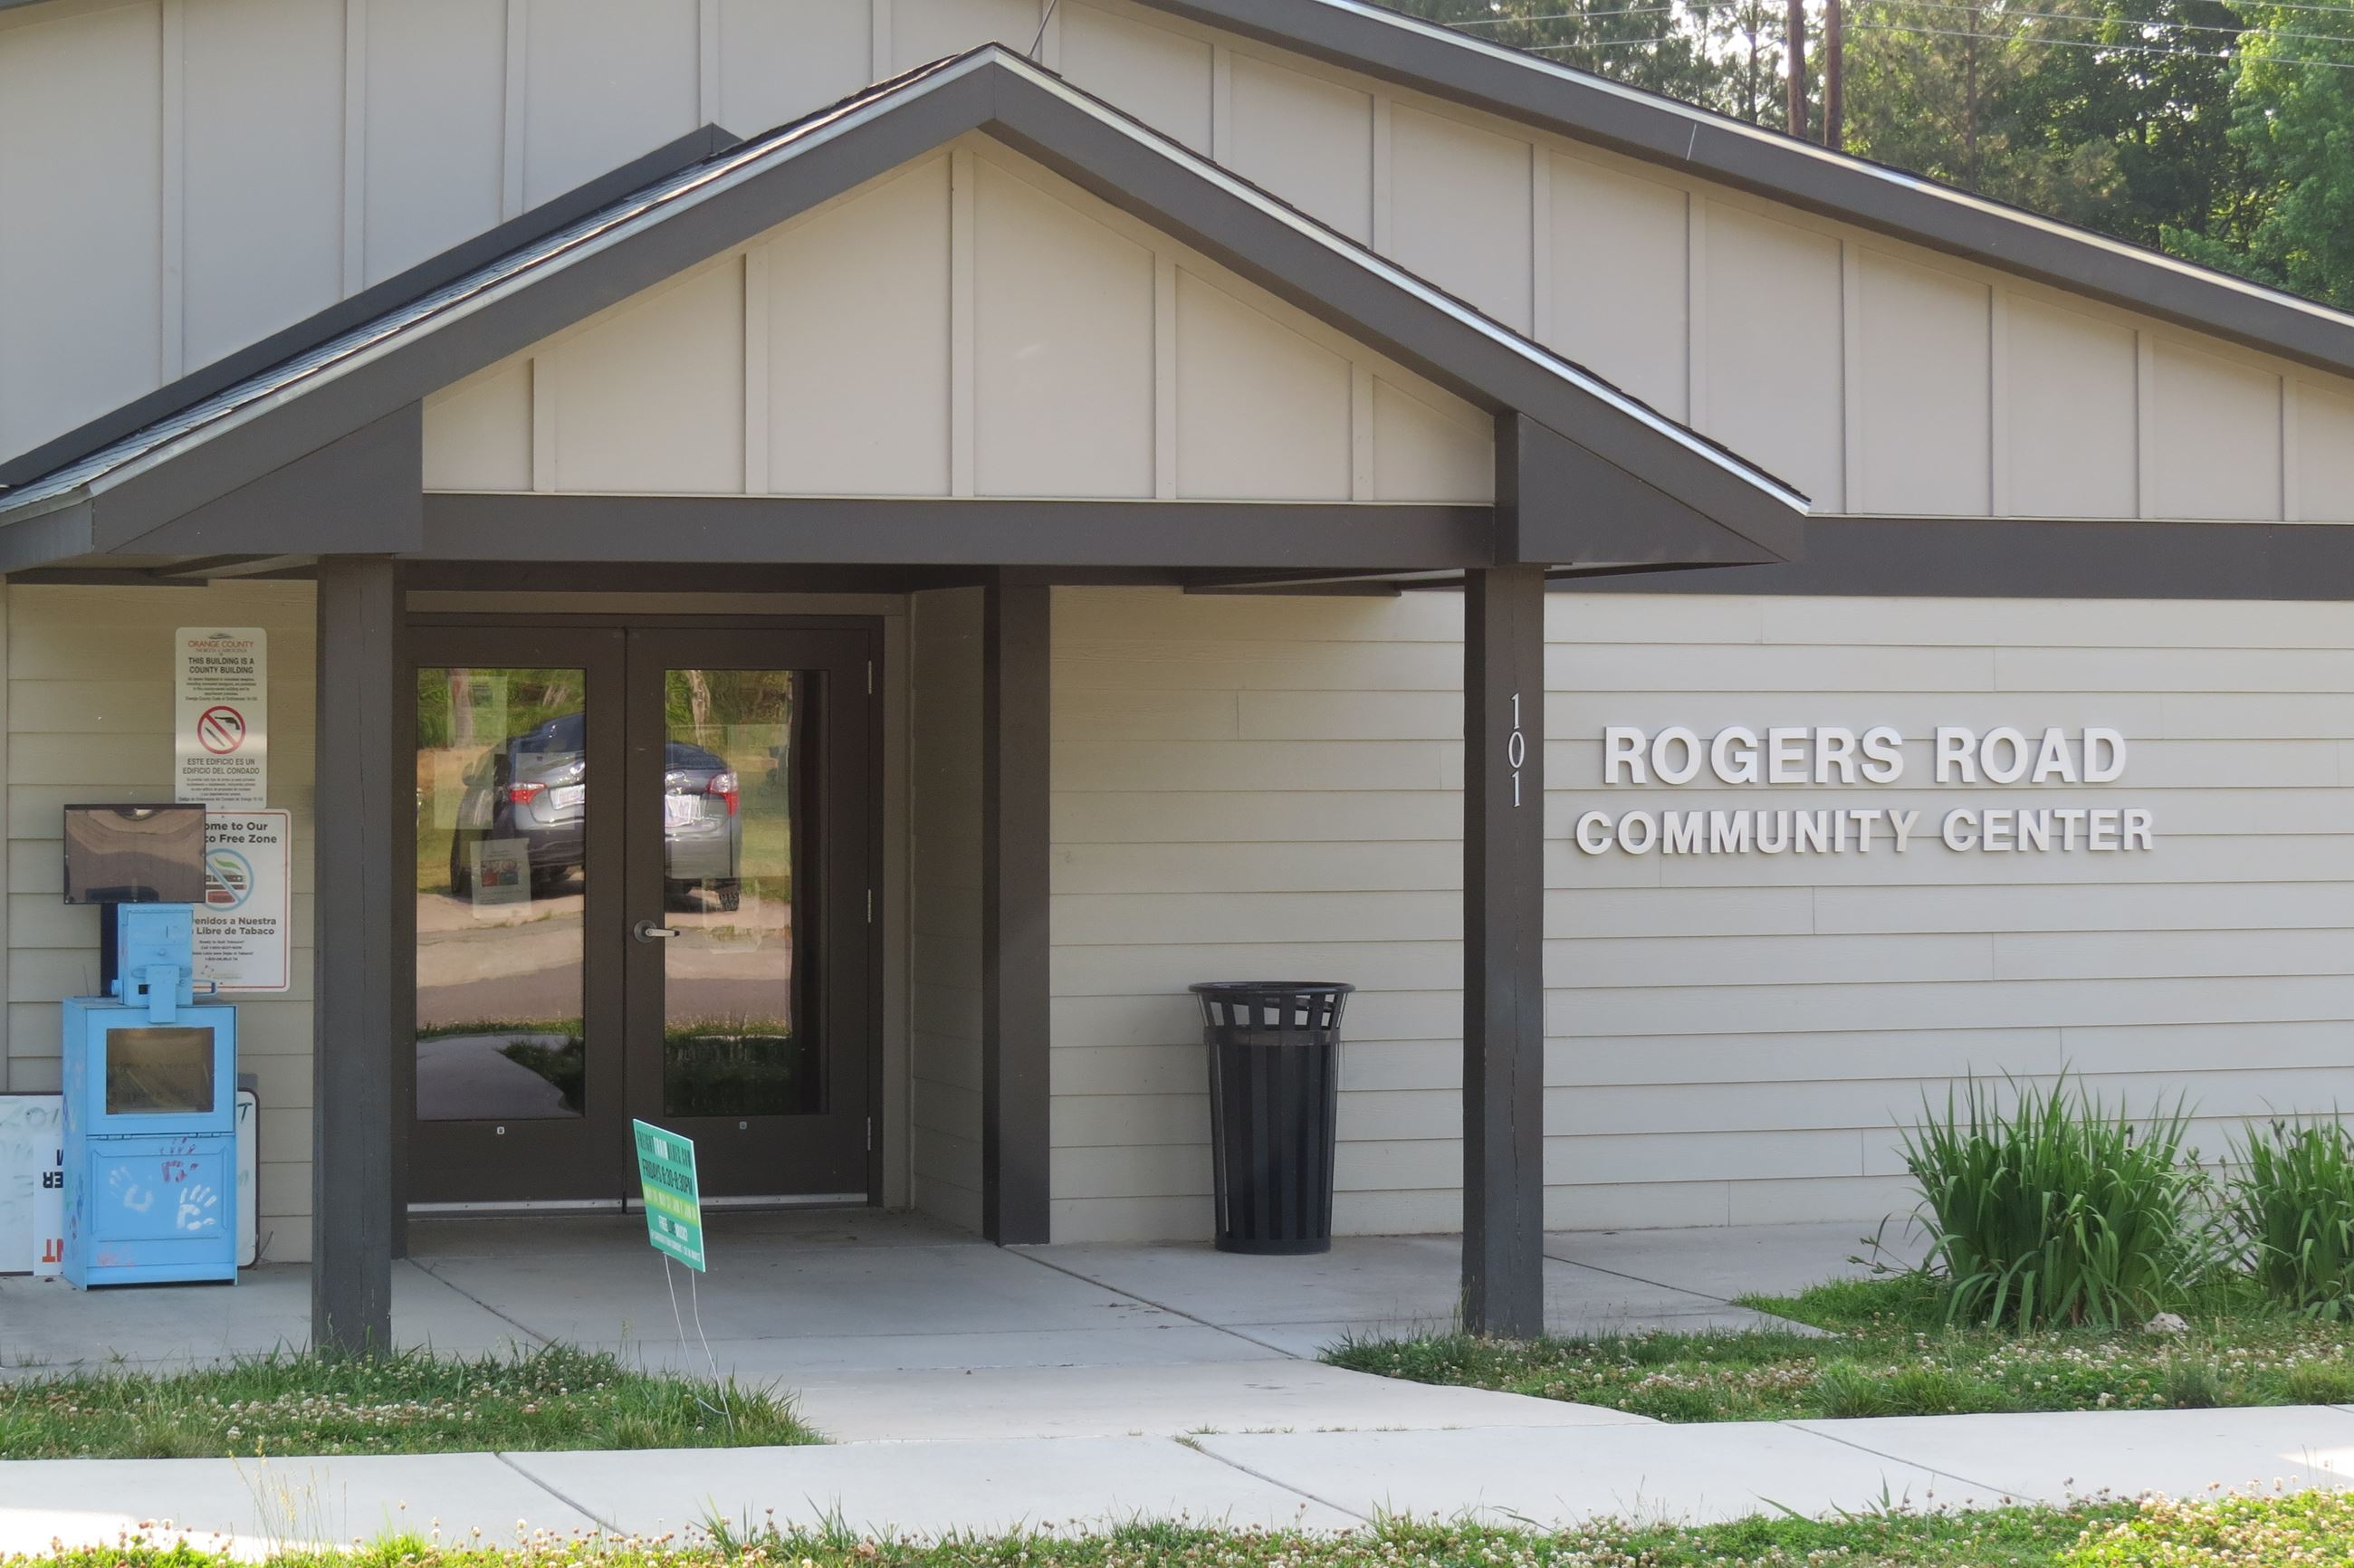 Rogers Road Community Center